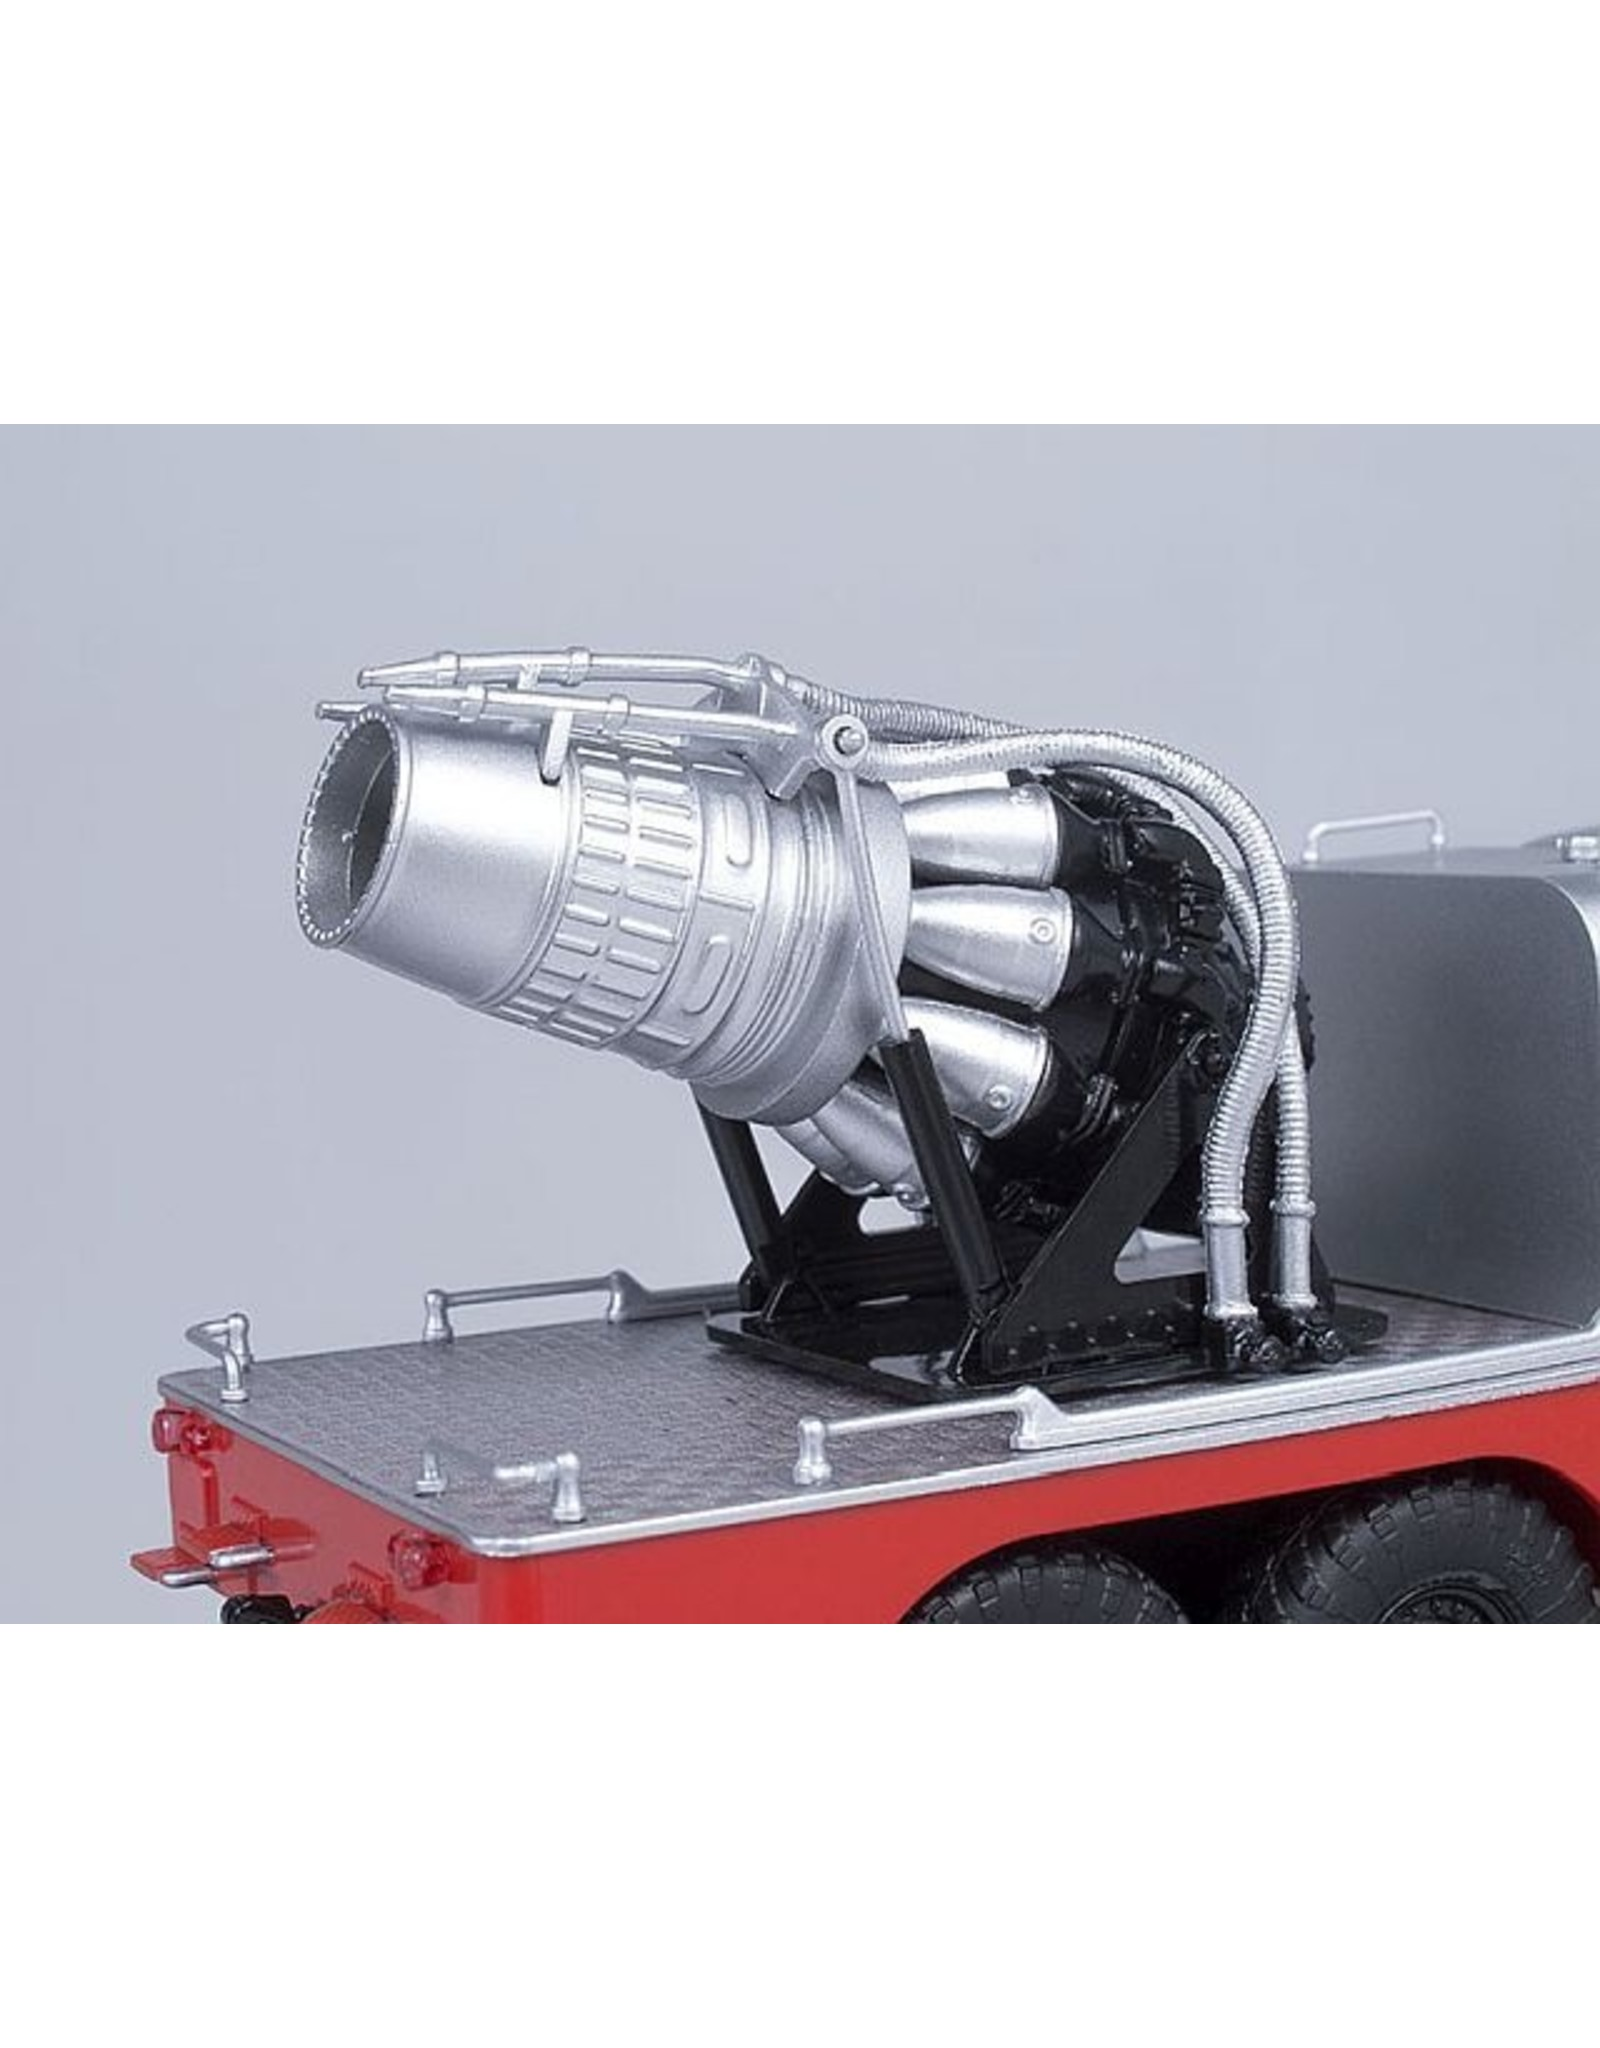 ZiL GAS-WATER FIGHTING TRUCK AGVT-100(ZiL-157)